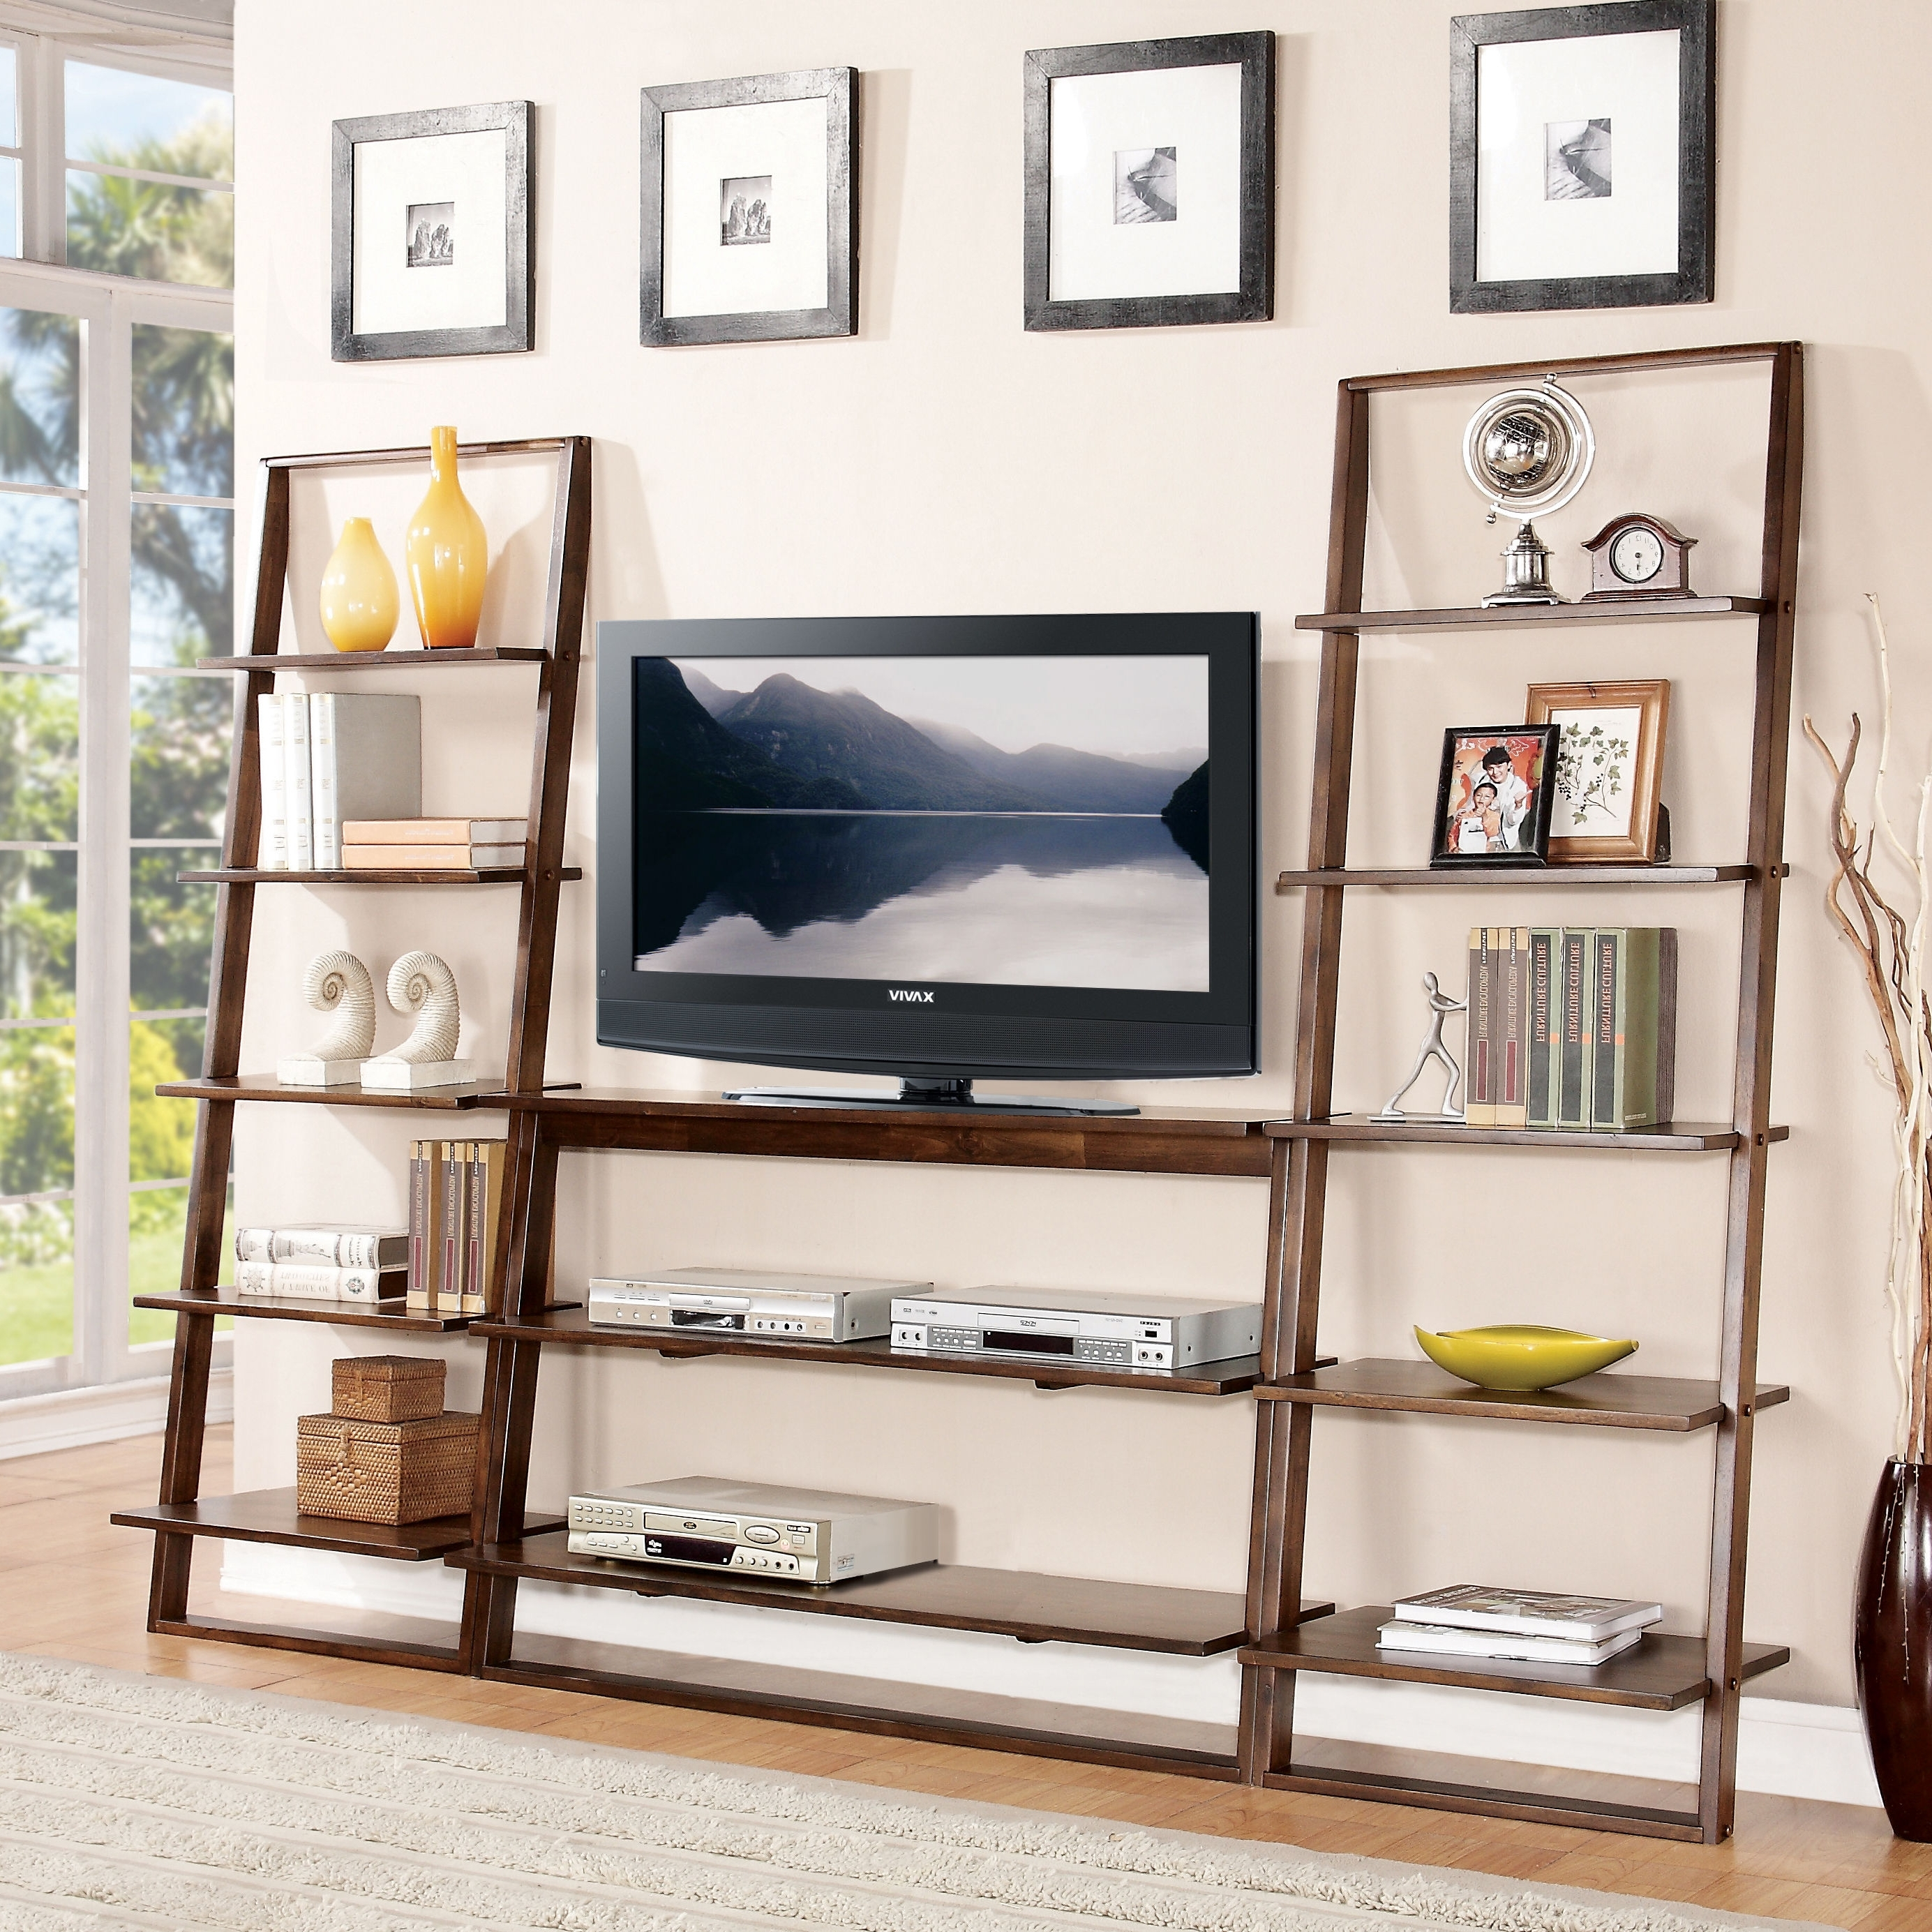 Current Contemporary Leaning Bookcase Ideas: Minimalist Leaning Bookcase Pertaining To Bookcases With Tv Stand (View 8 of 15)